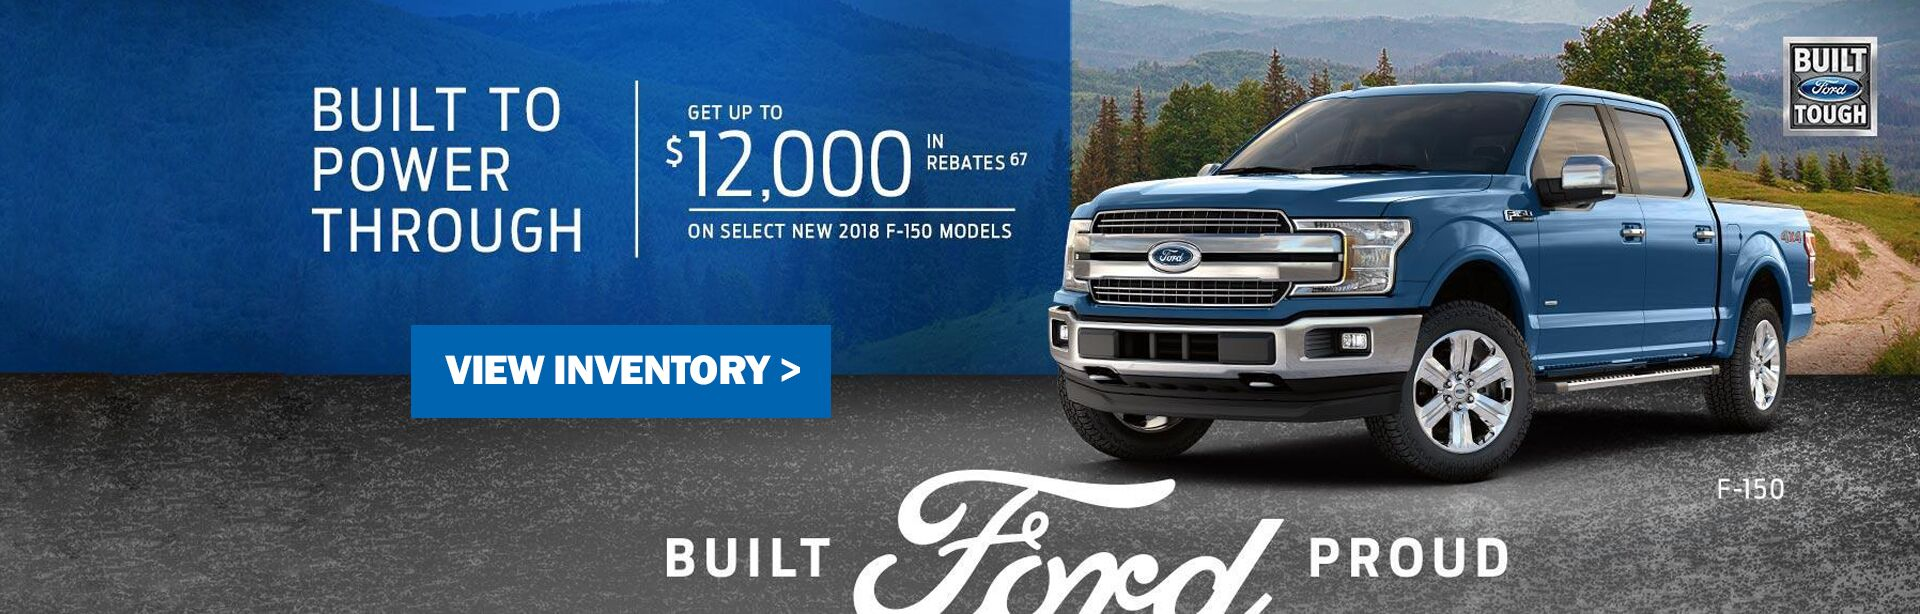 Ford F150 Sale at Marlborough Ford